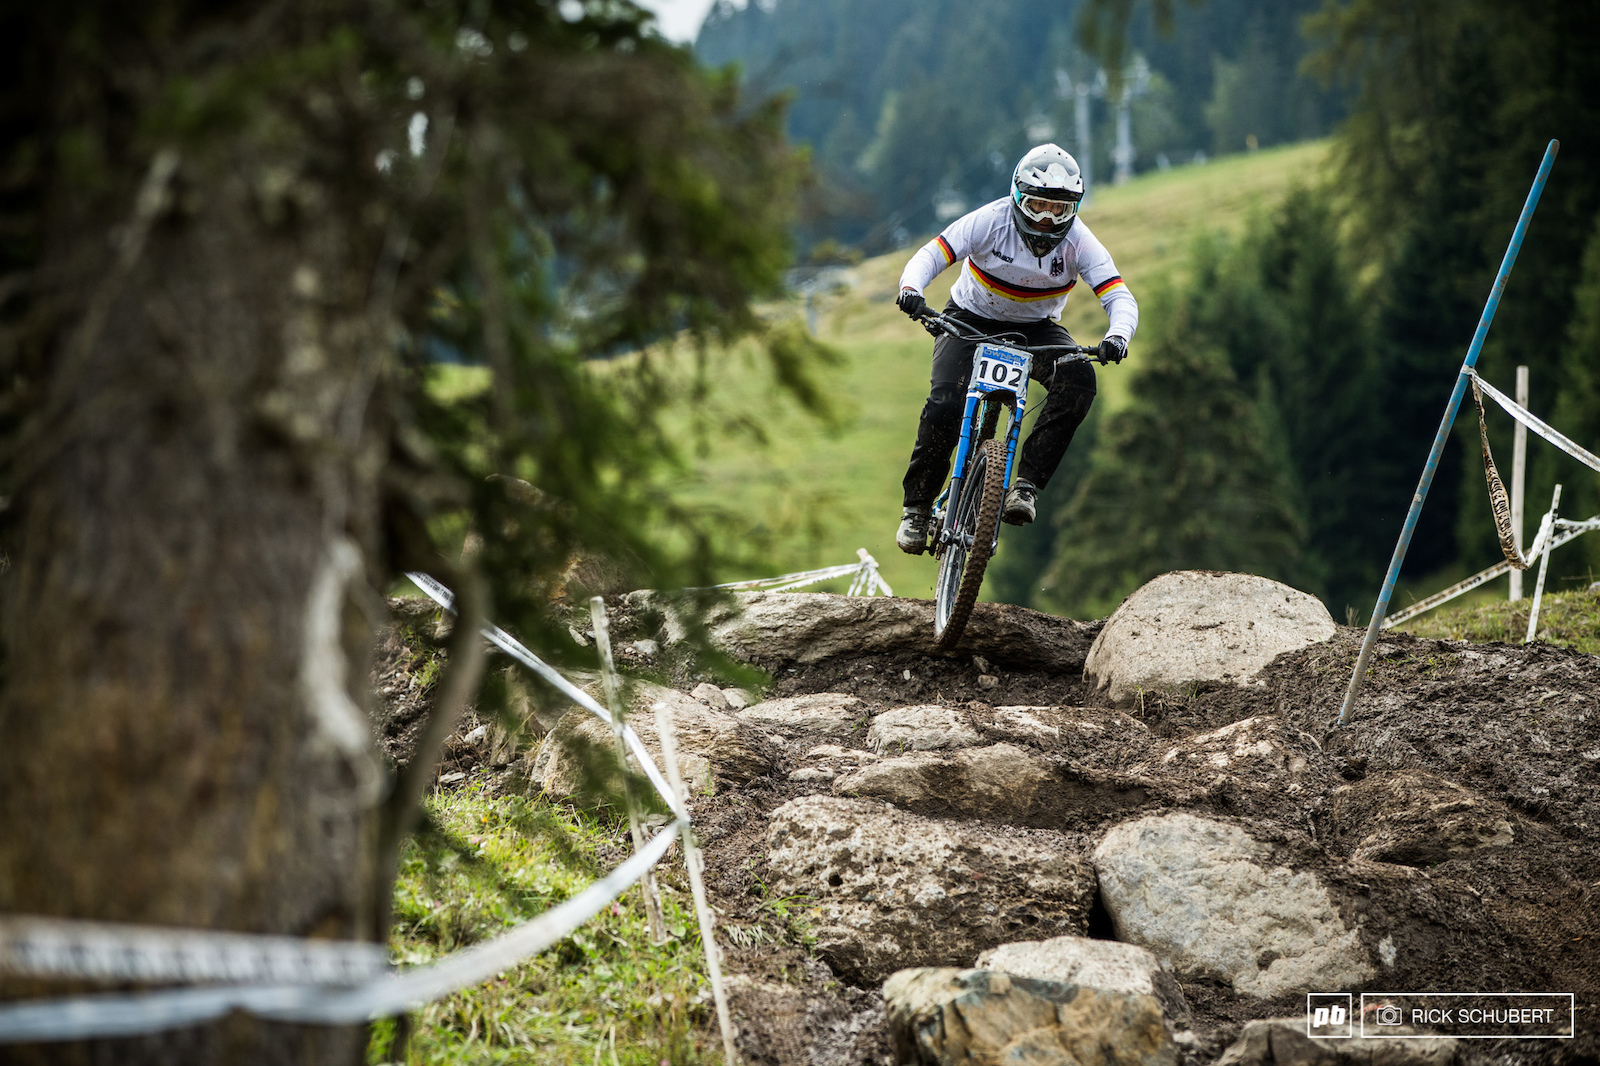 Nina Hoffmann is coming from a 6th place finisher in La Bresse and is still building. She took the win in Brandnertal